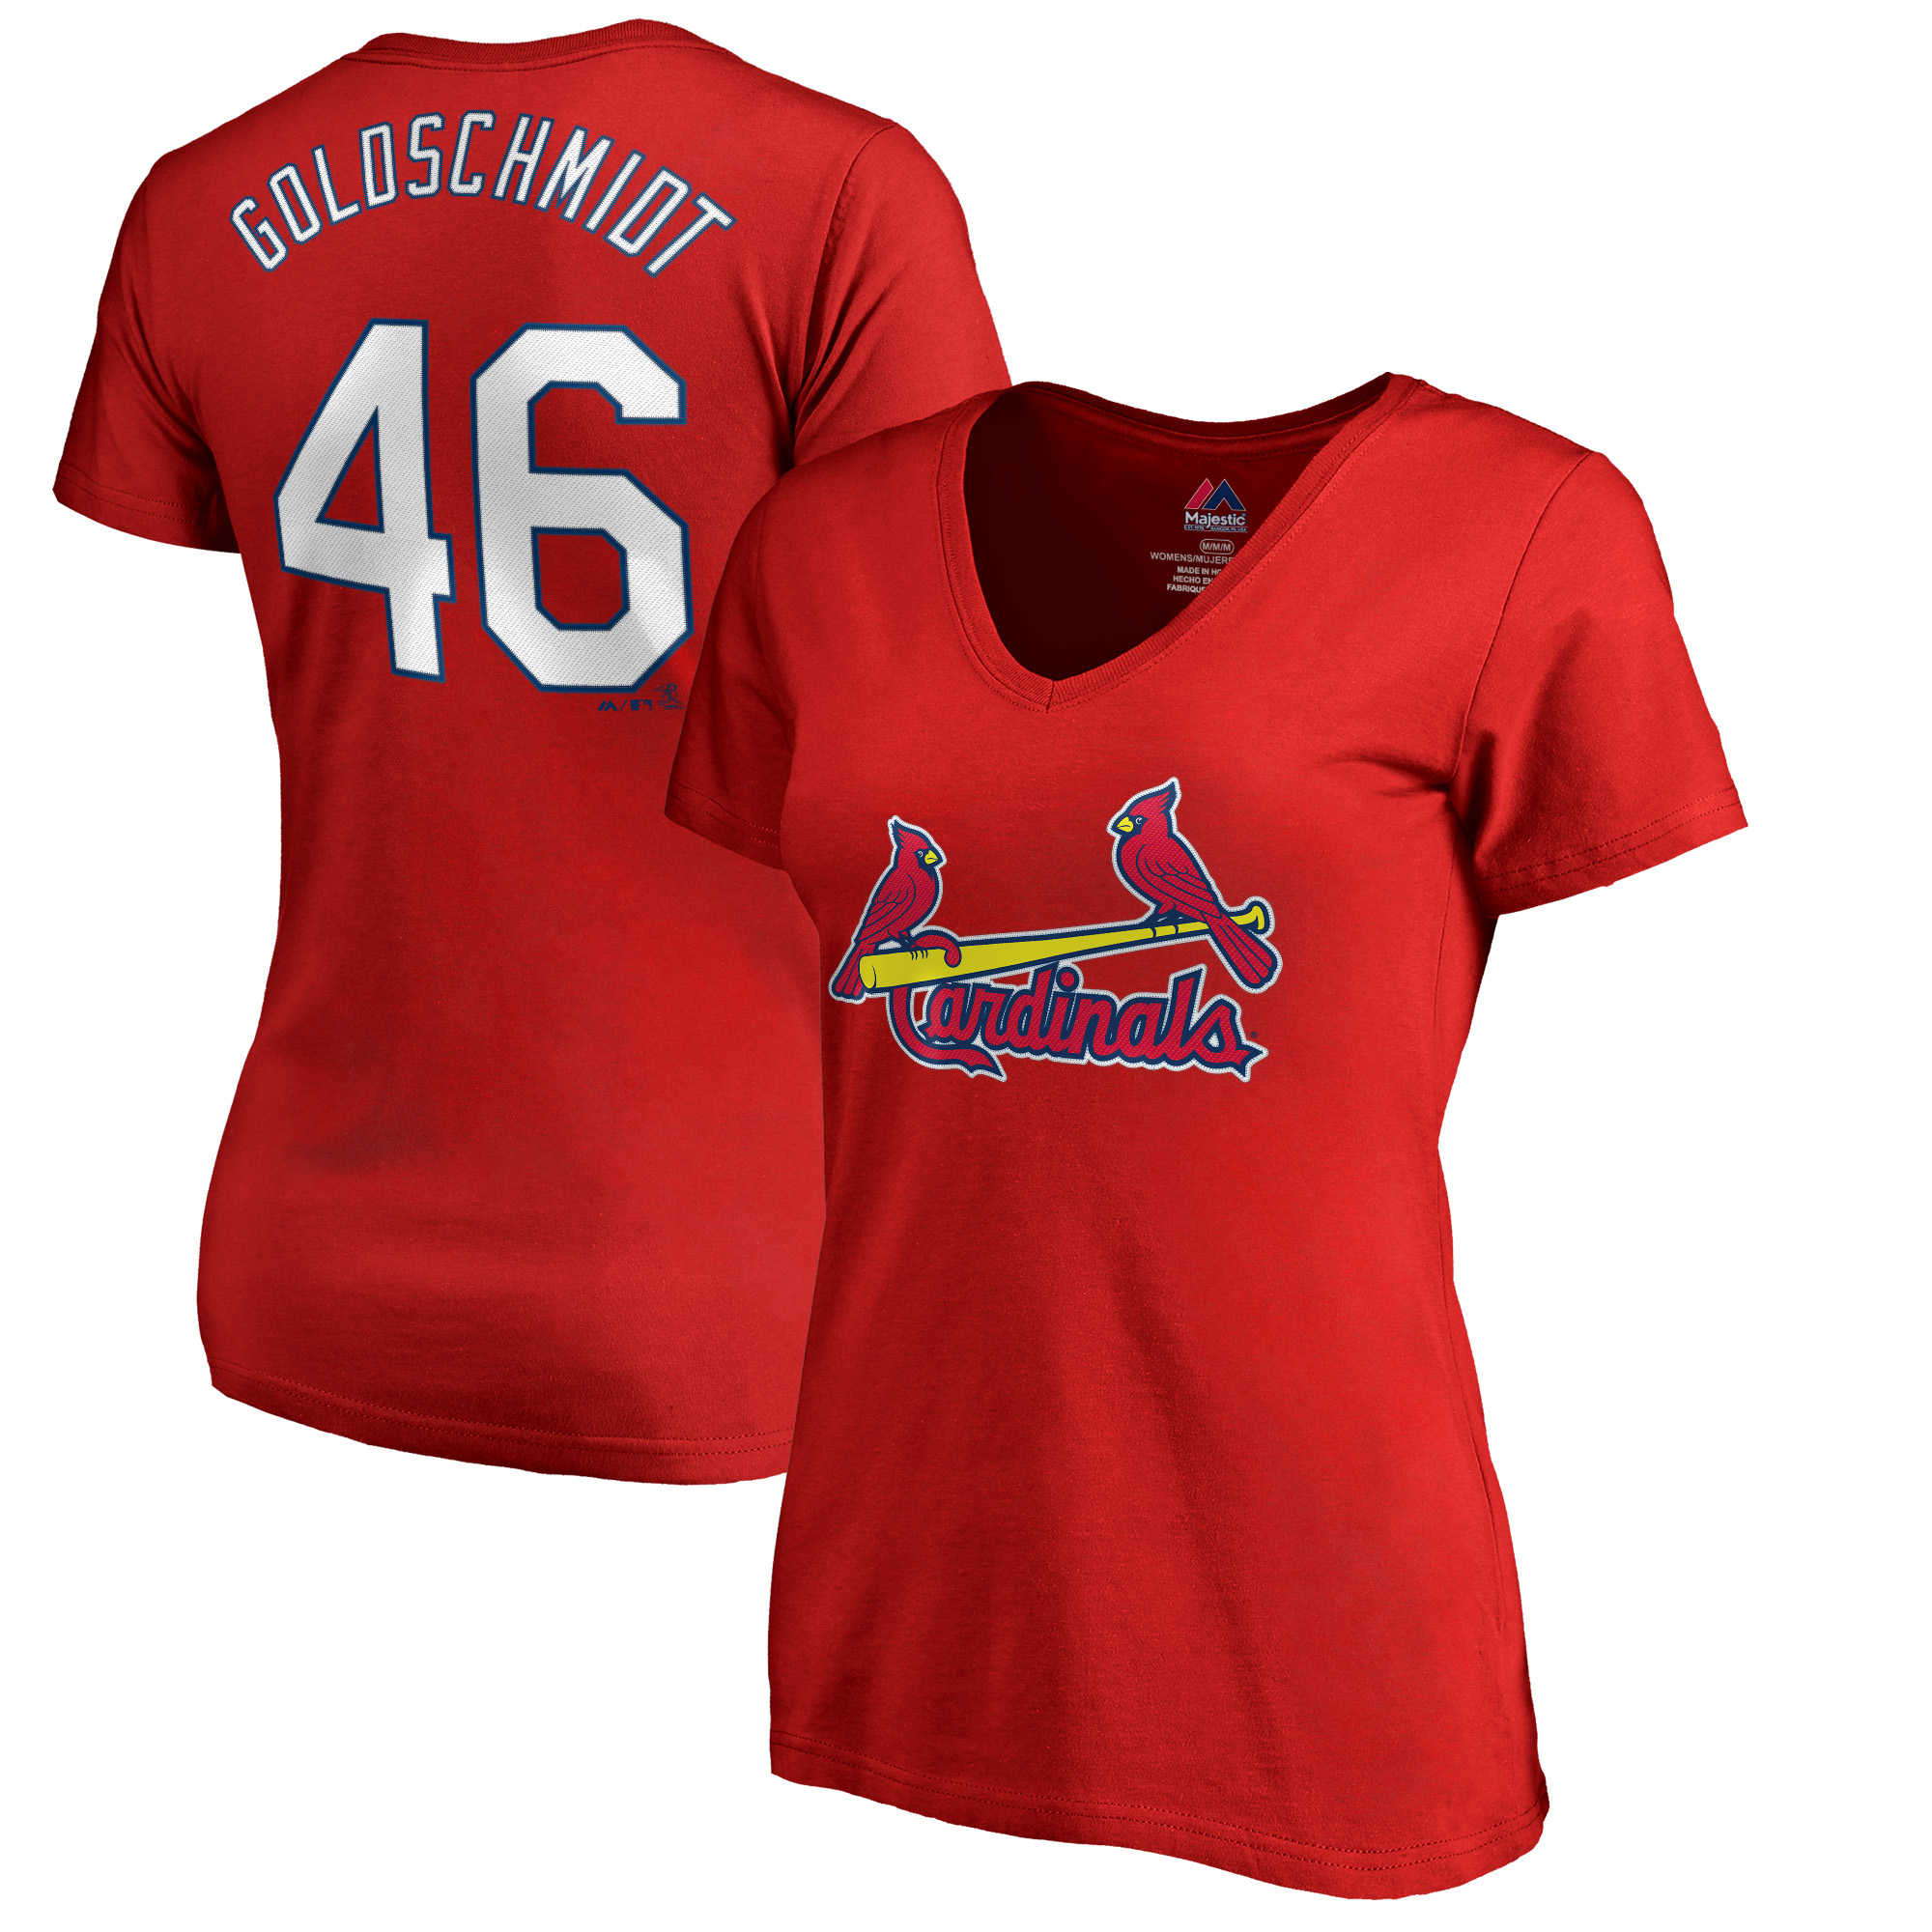 Paul Goldschmidt St. Louis Cardinals Majestic Women's Name & Number V-Neck T-Shirt - Red